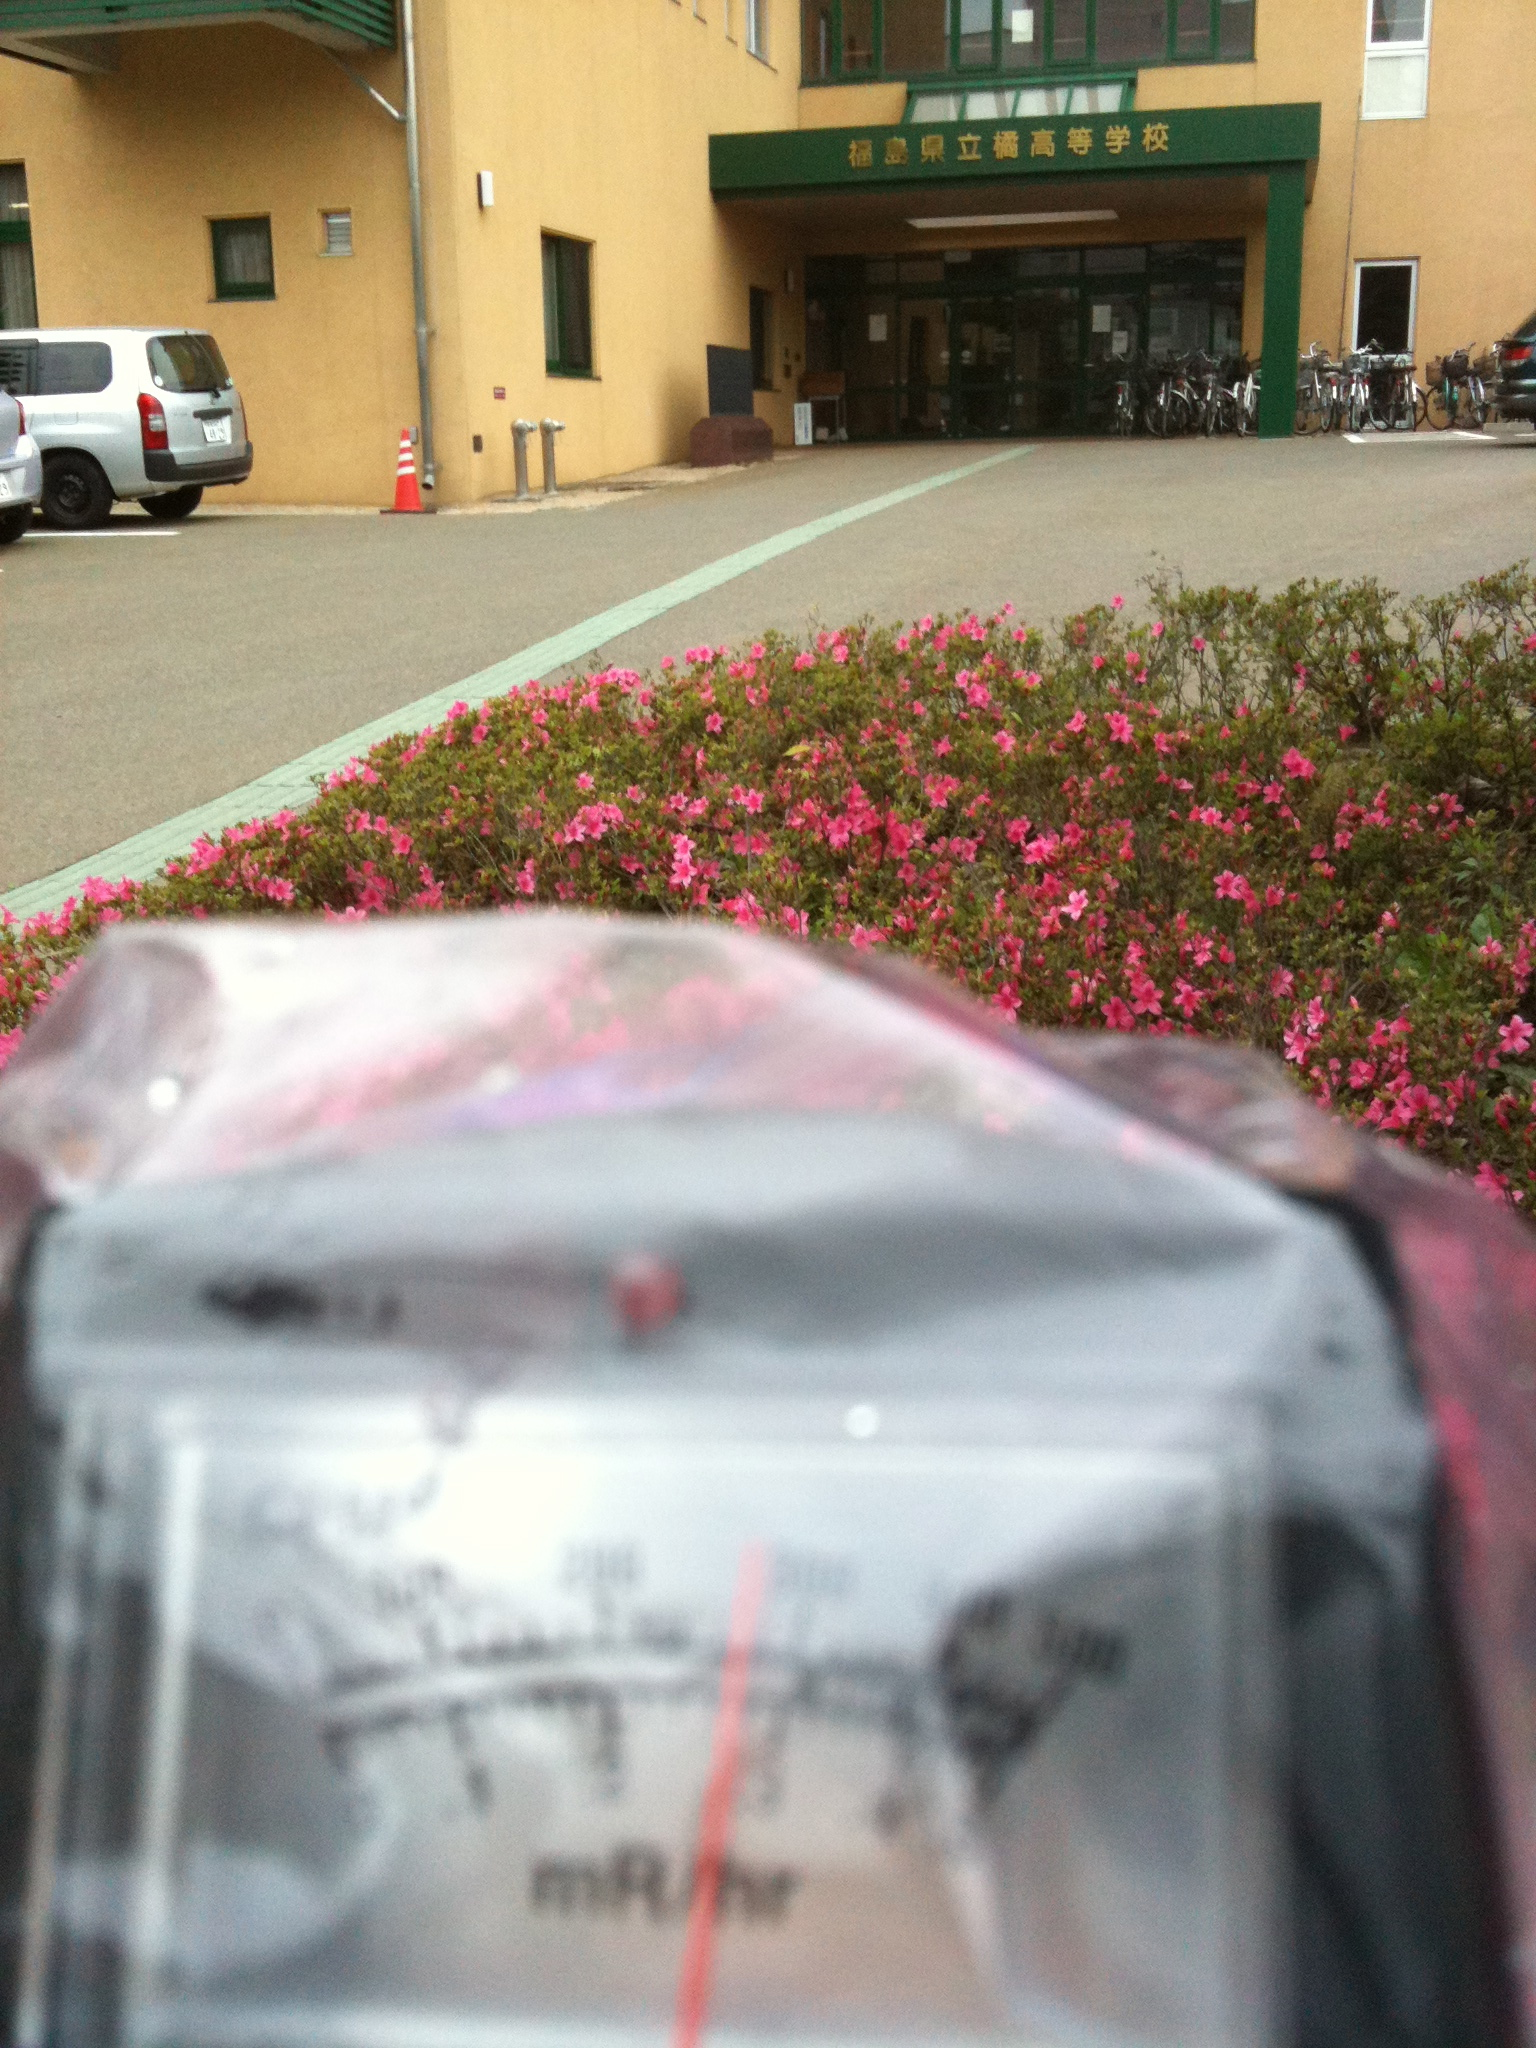 In front of a gate of a high shool. 2.31 micro Sv/h on average of 32 seconds.